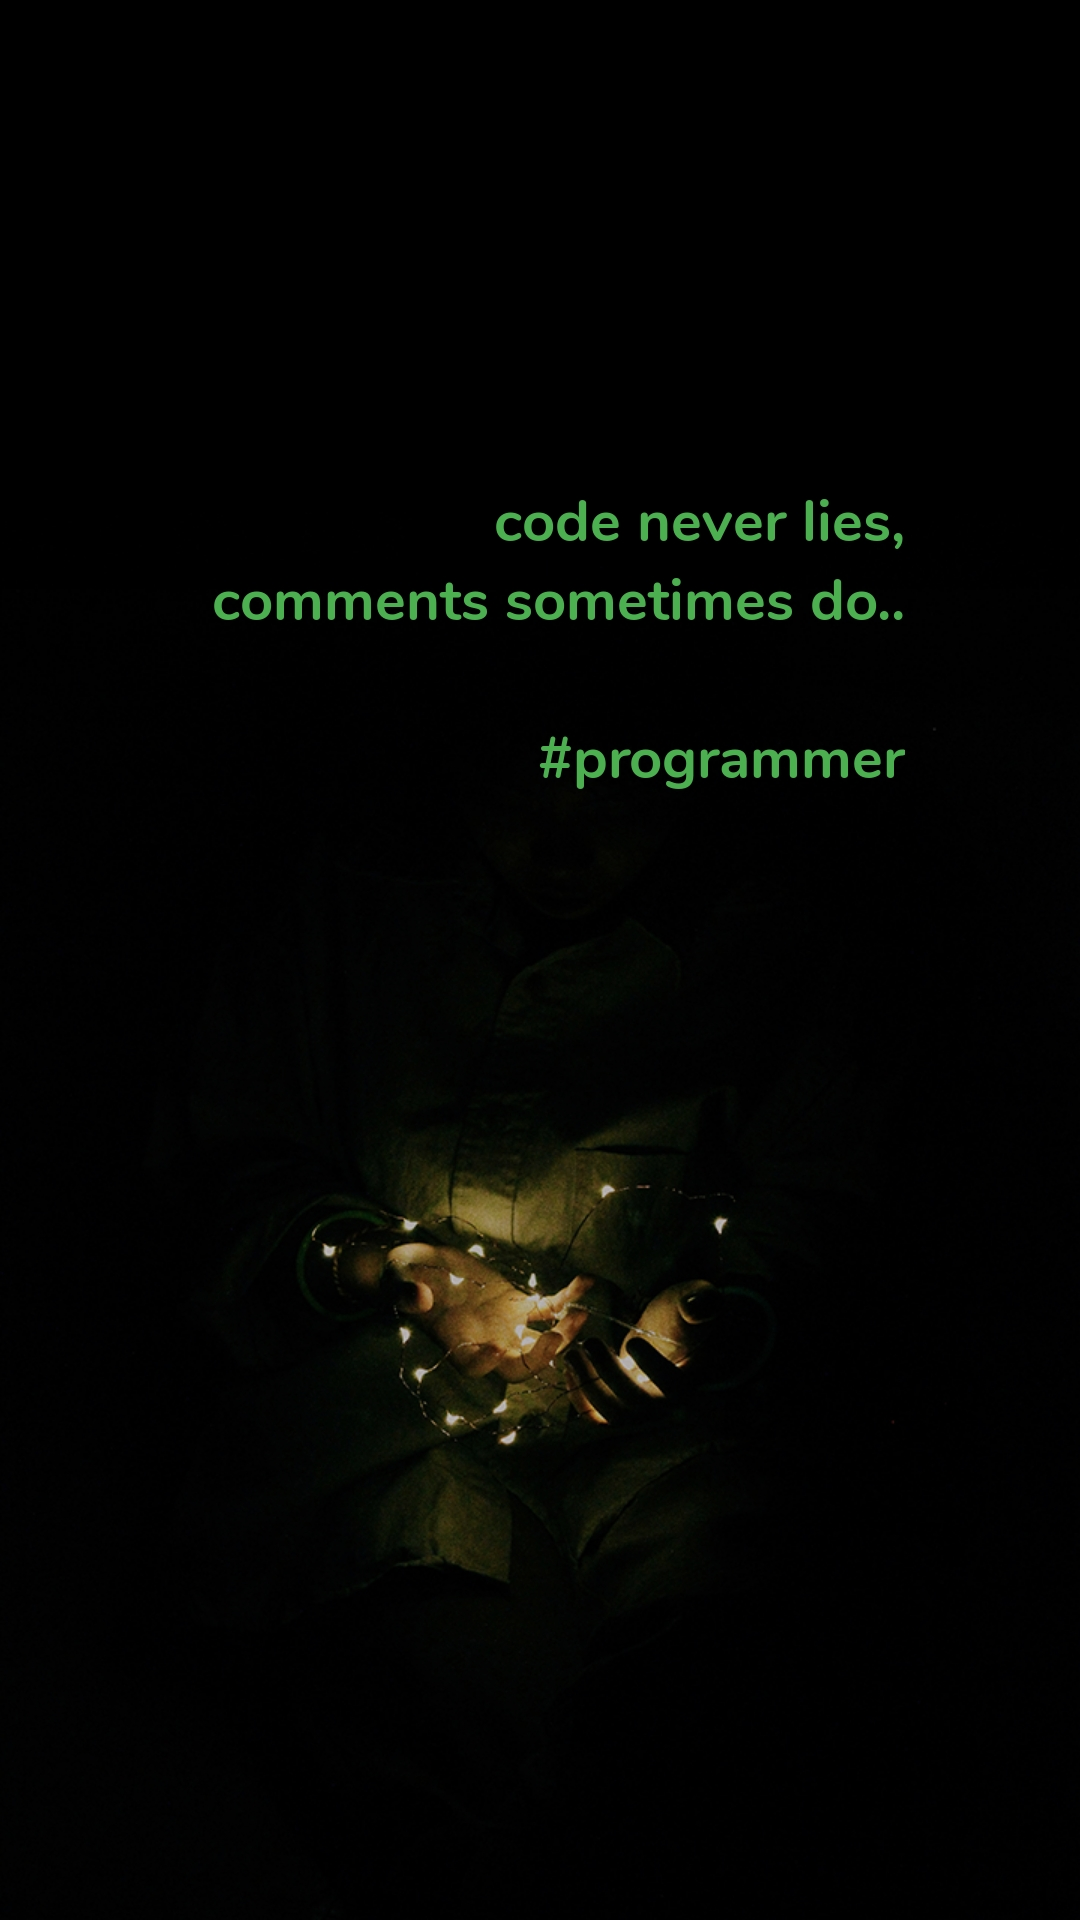 code never lies, comments sometimes do..  #programmer